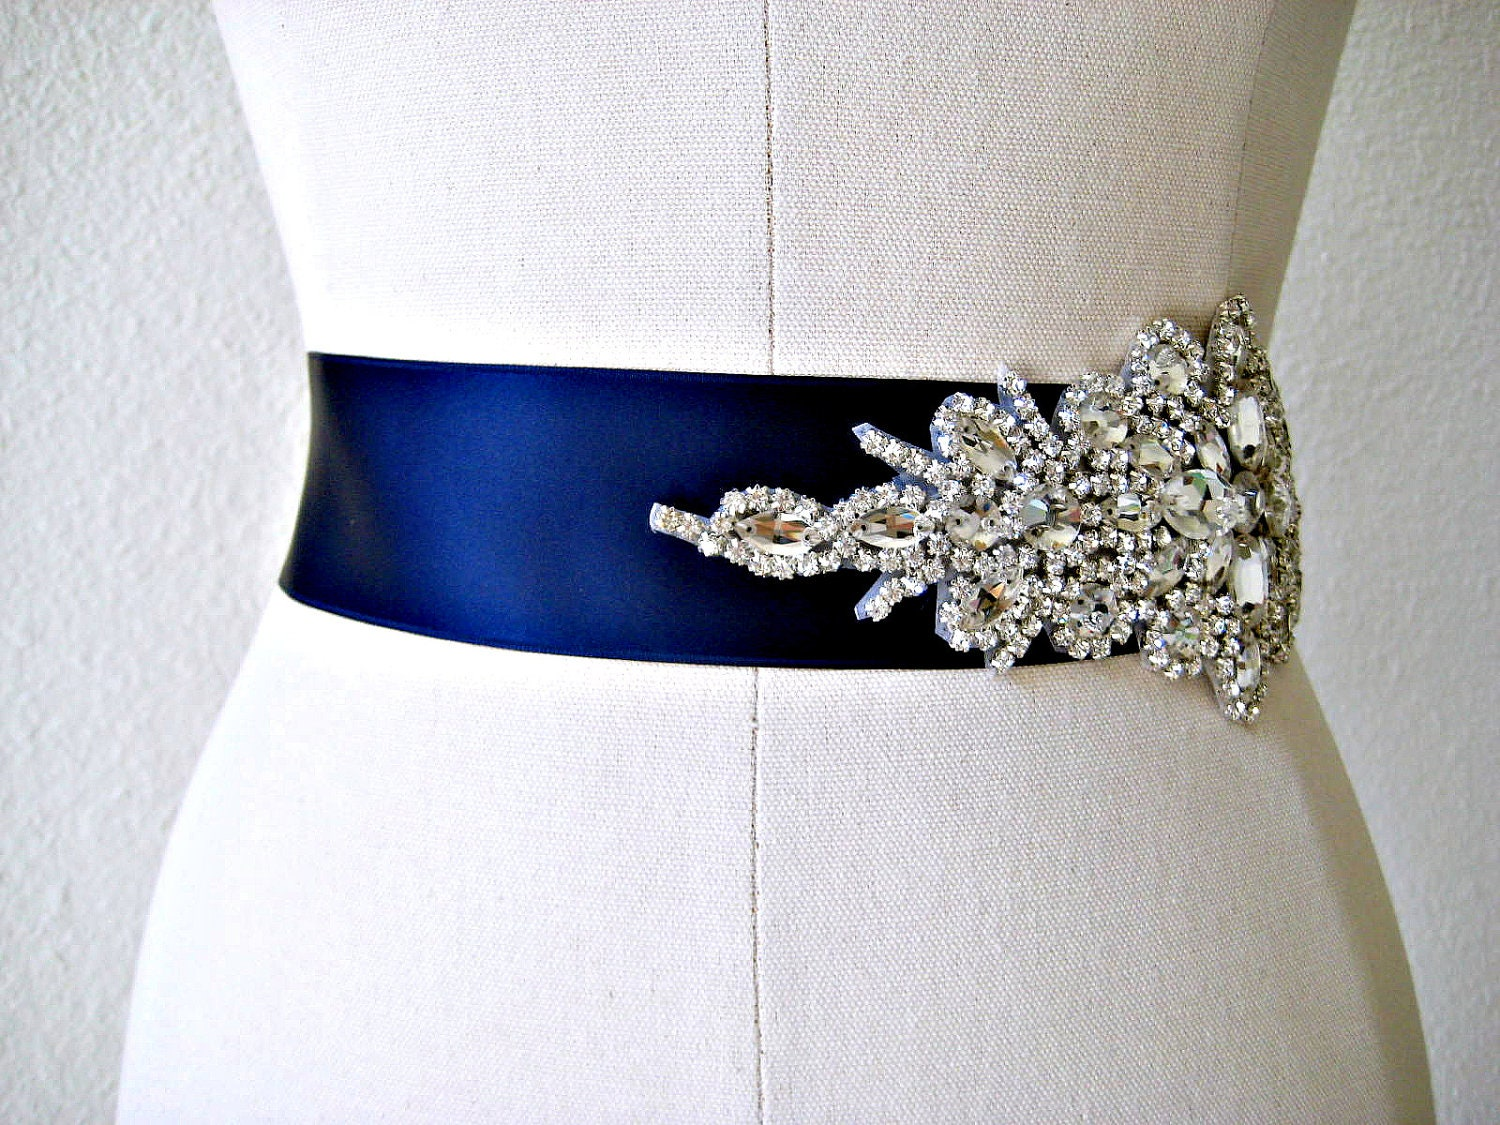 Bridal beaded glamorous crystal sash luxury by ingenueb for Blue sash for wedding dress